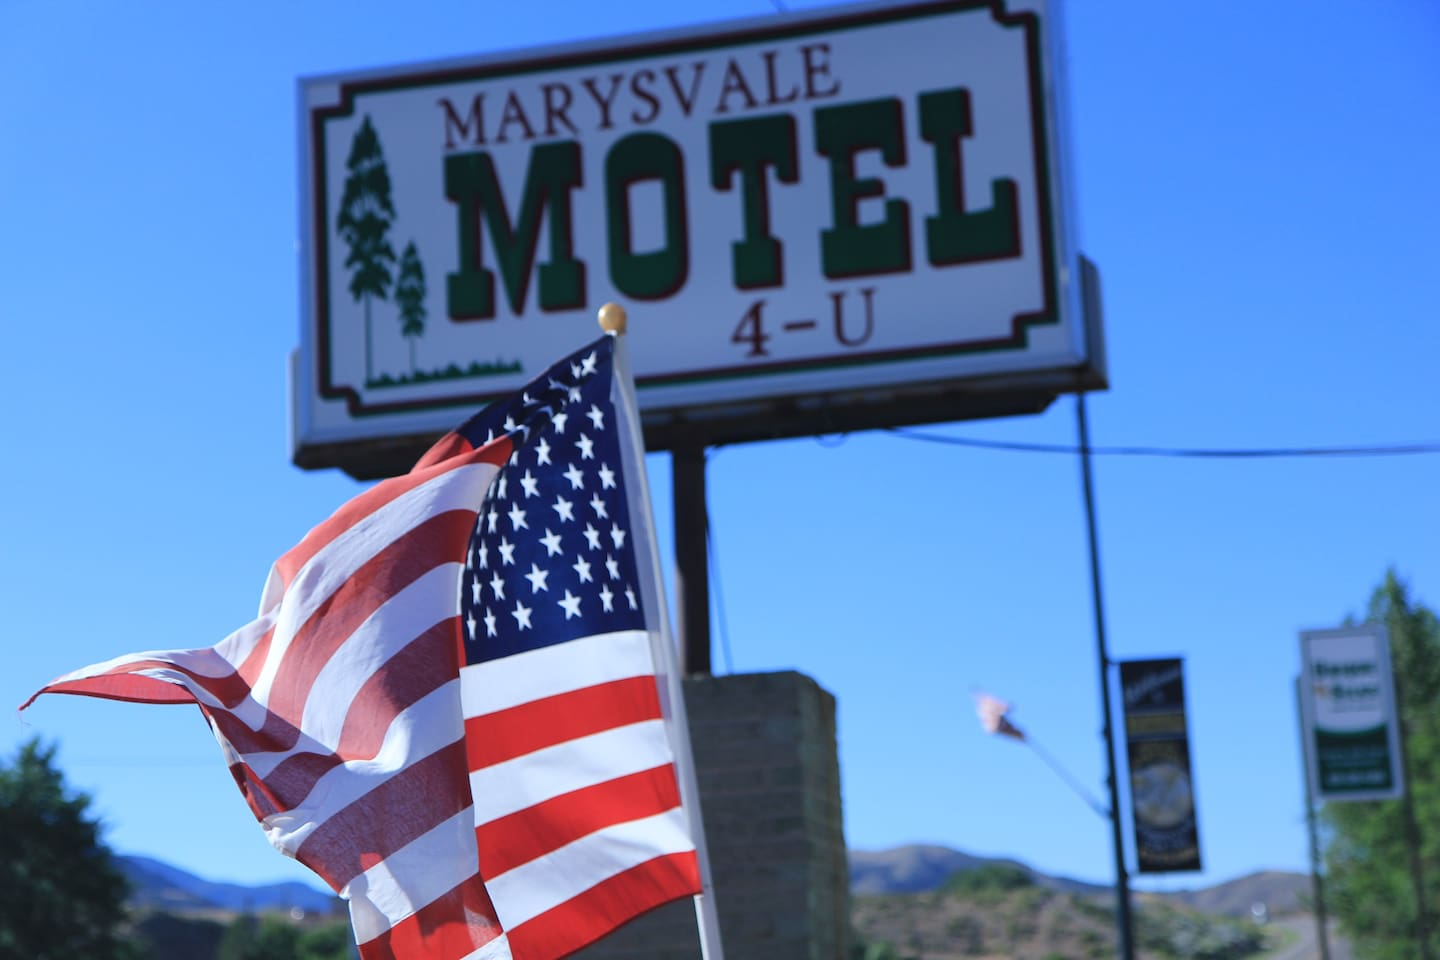 Marysvale Motel 4-U This is what we look like, so you will know that you are at the right place.  We are on Highway 89.